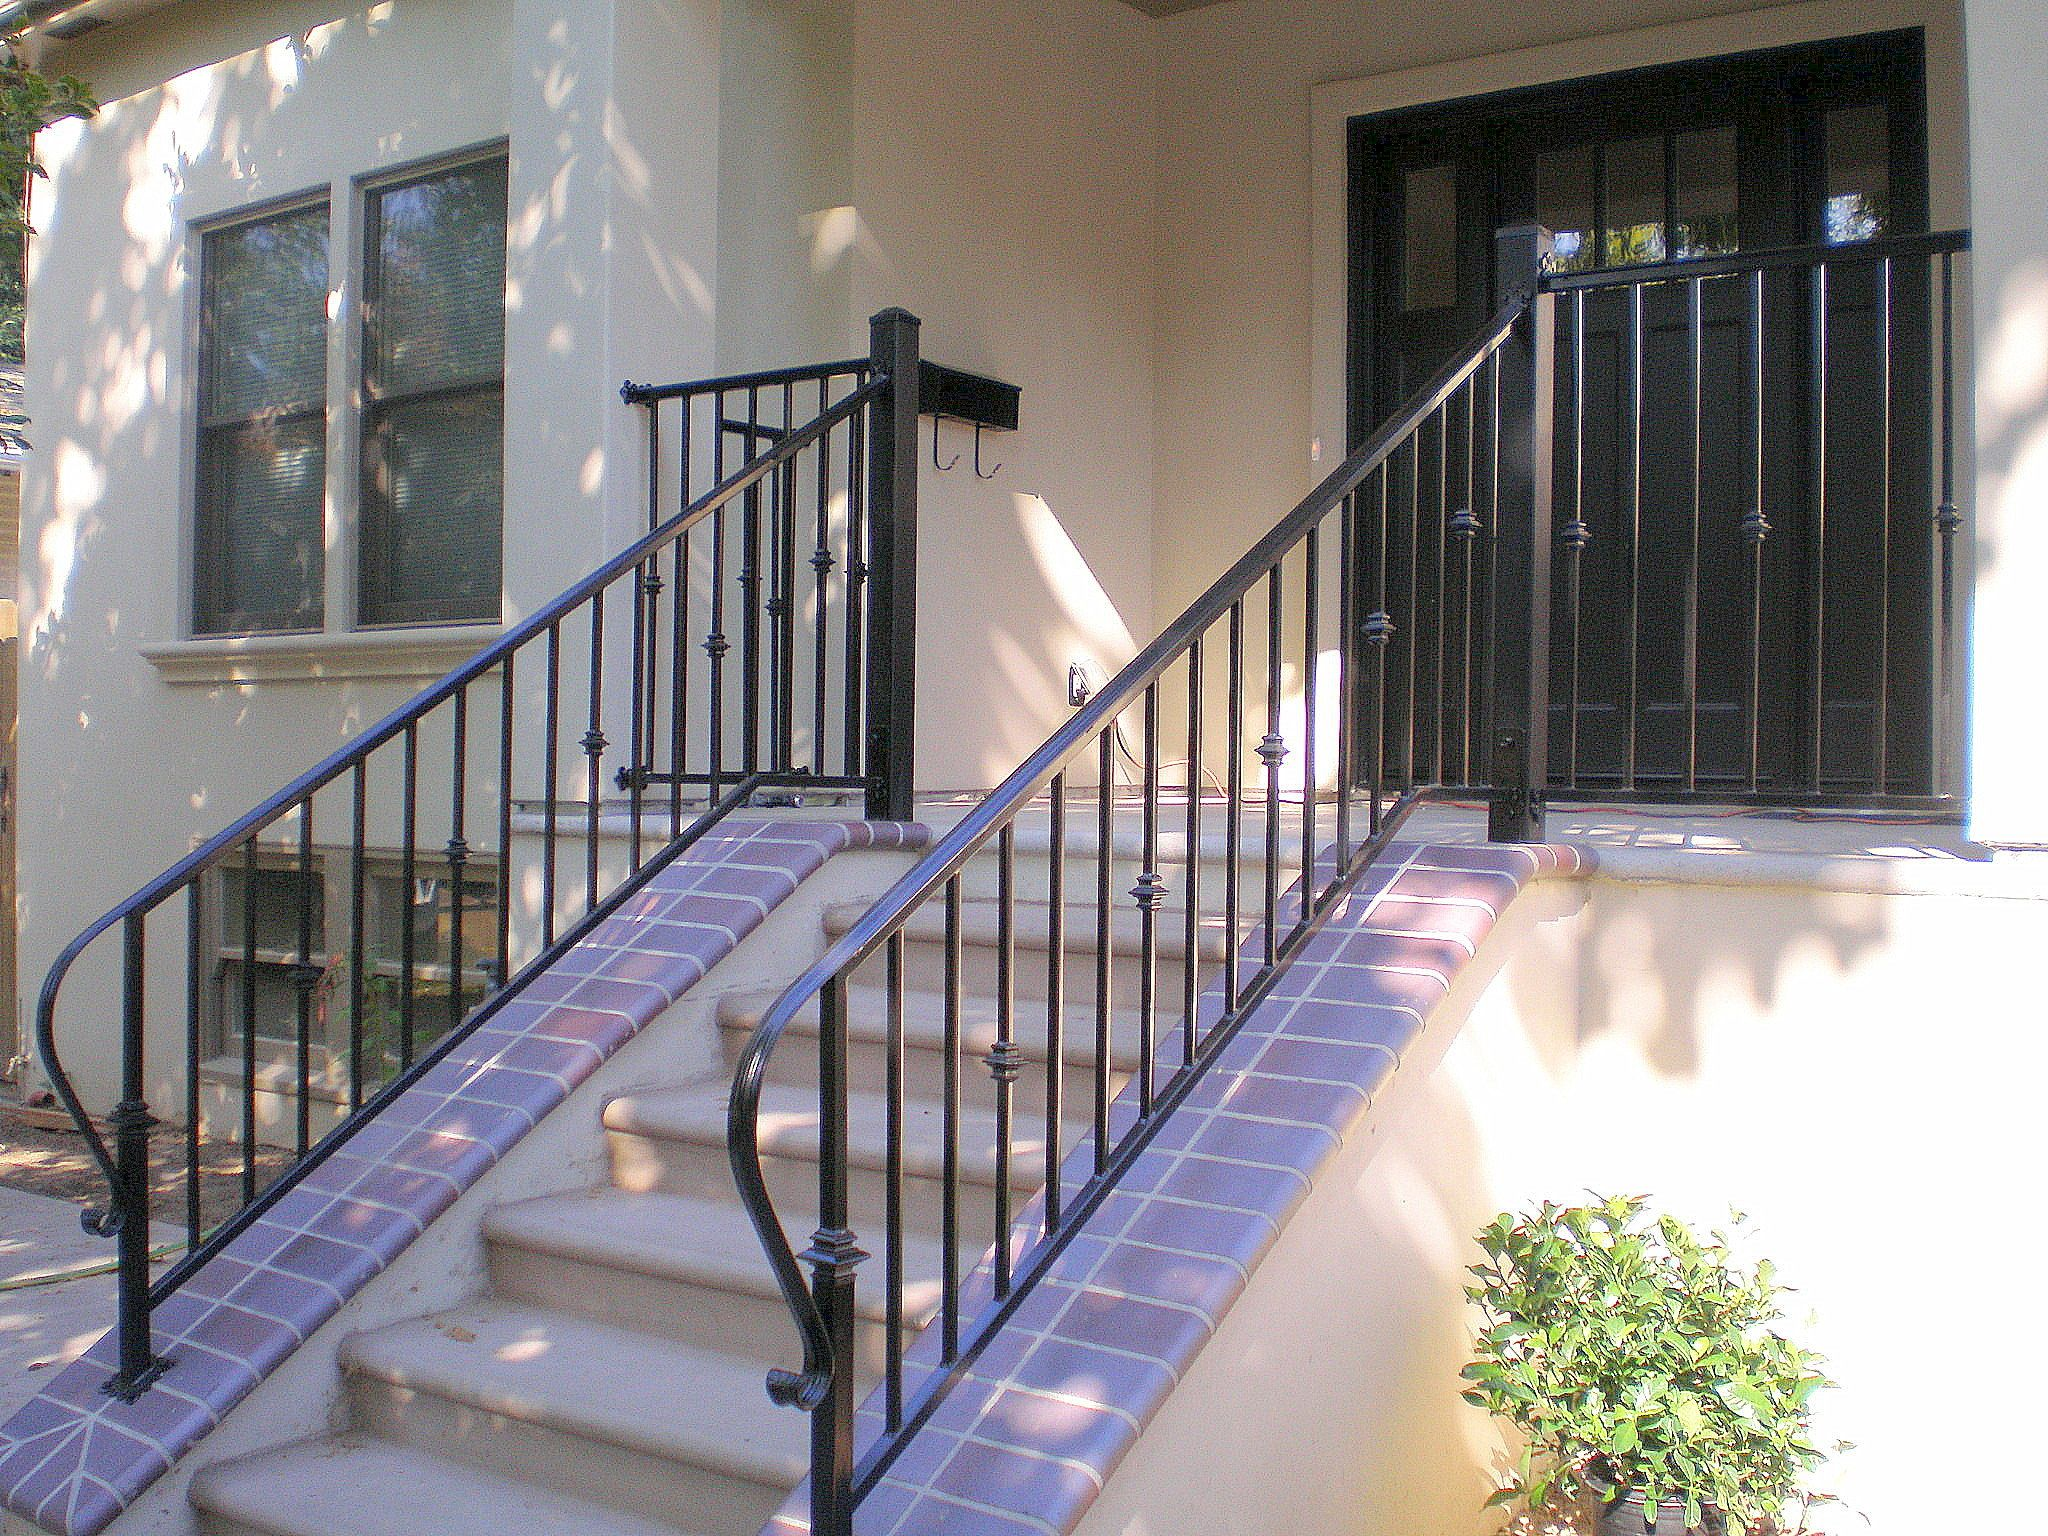 Wrought Iron Outdoor Hand Railings Ornamental Iron Porch Railing For The